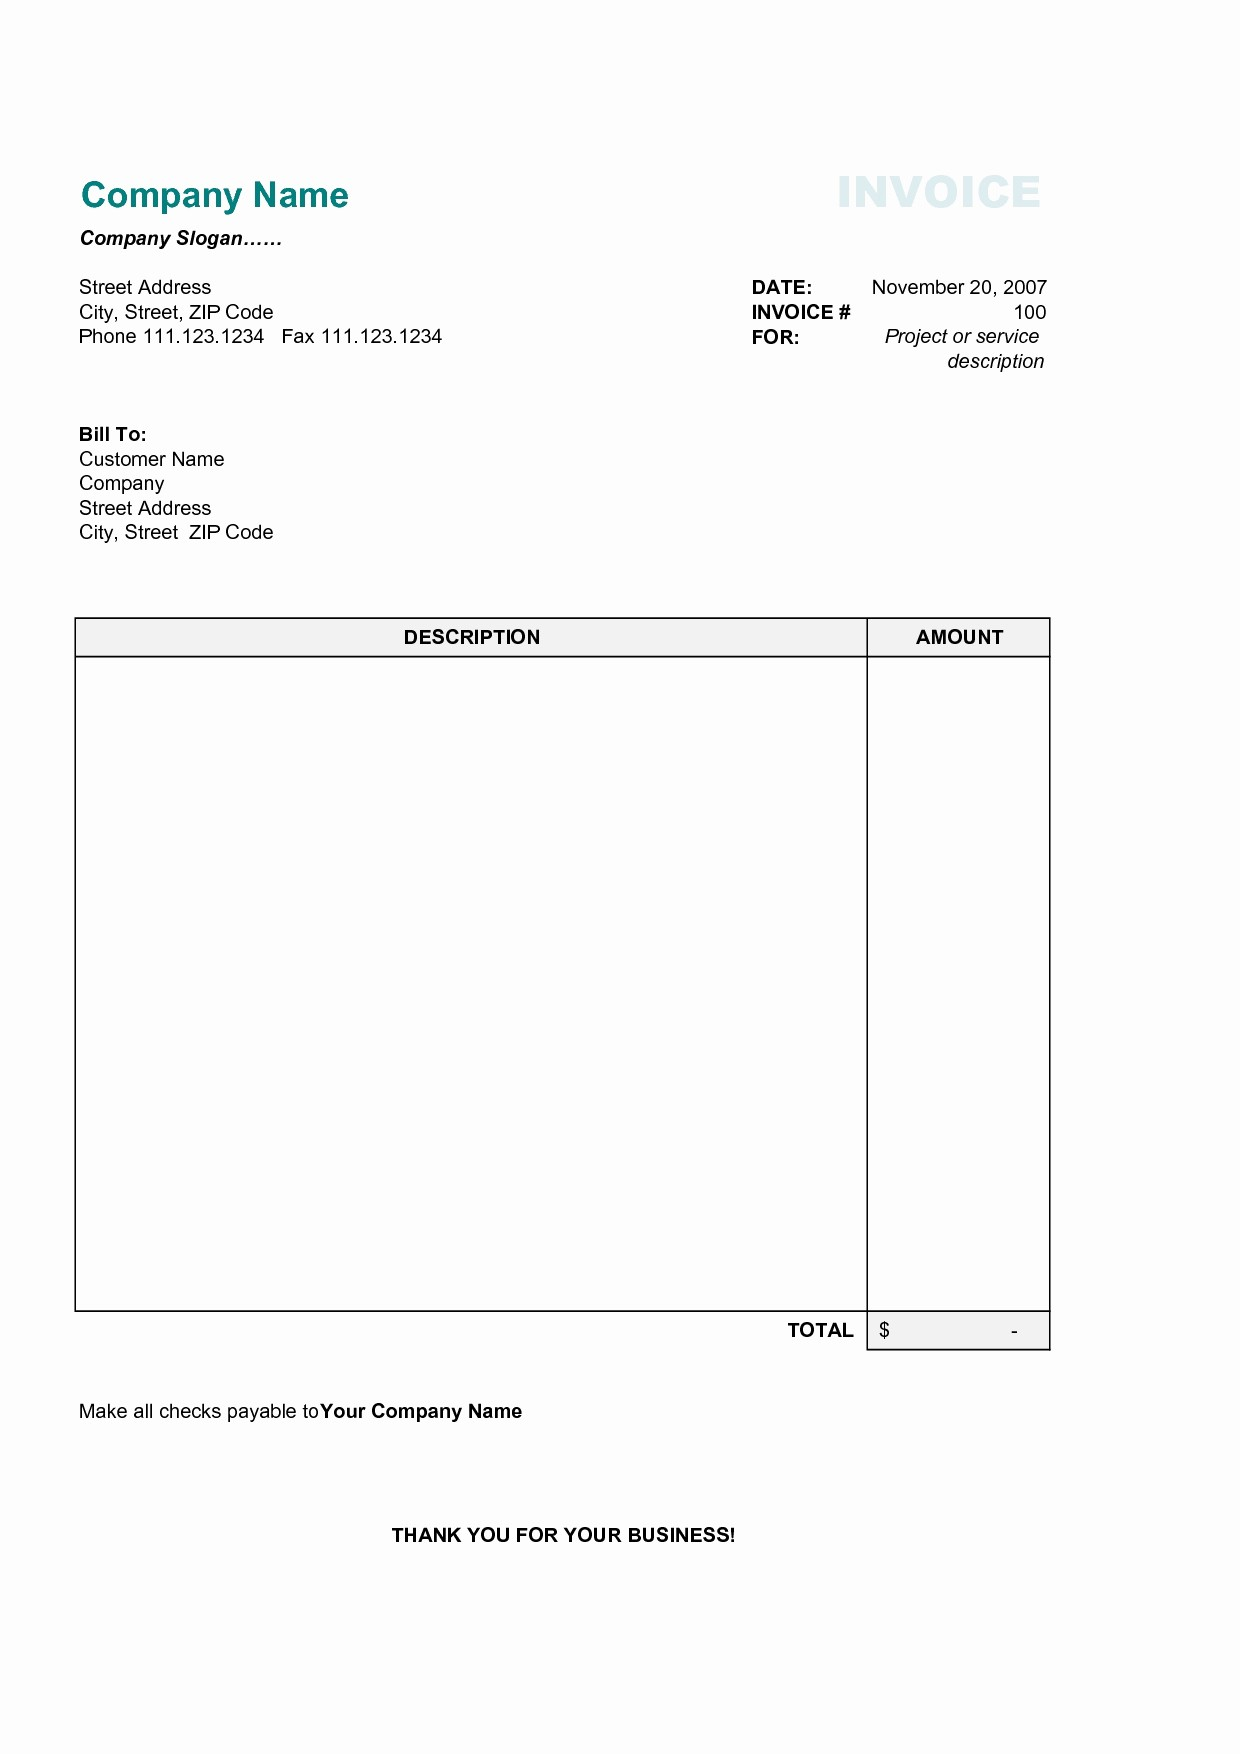 Sample Invoices for Small Business Luxury Business Invoice Template Free Invoice Template Ideas